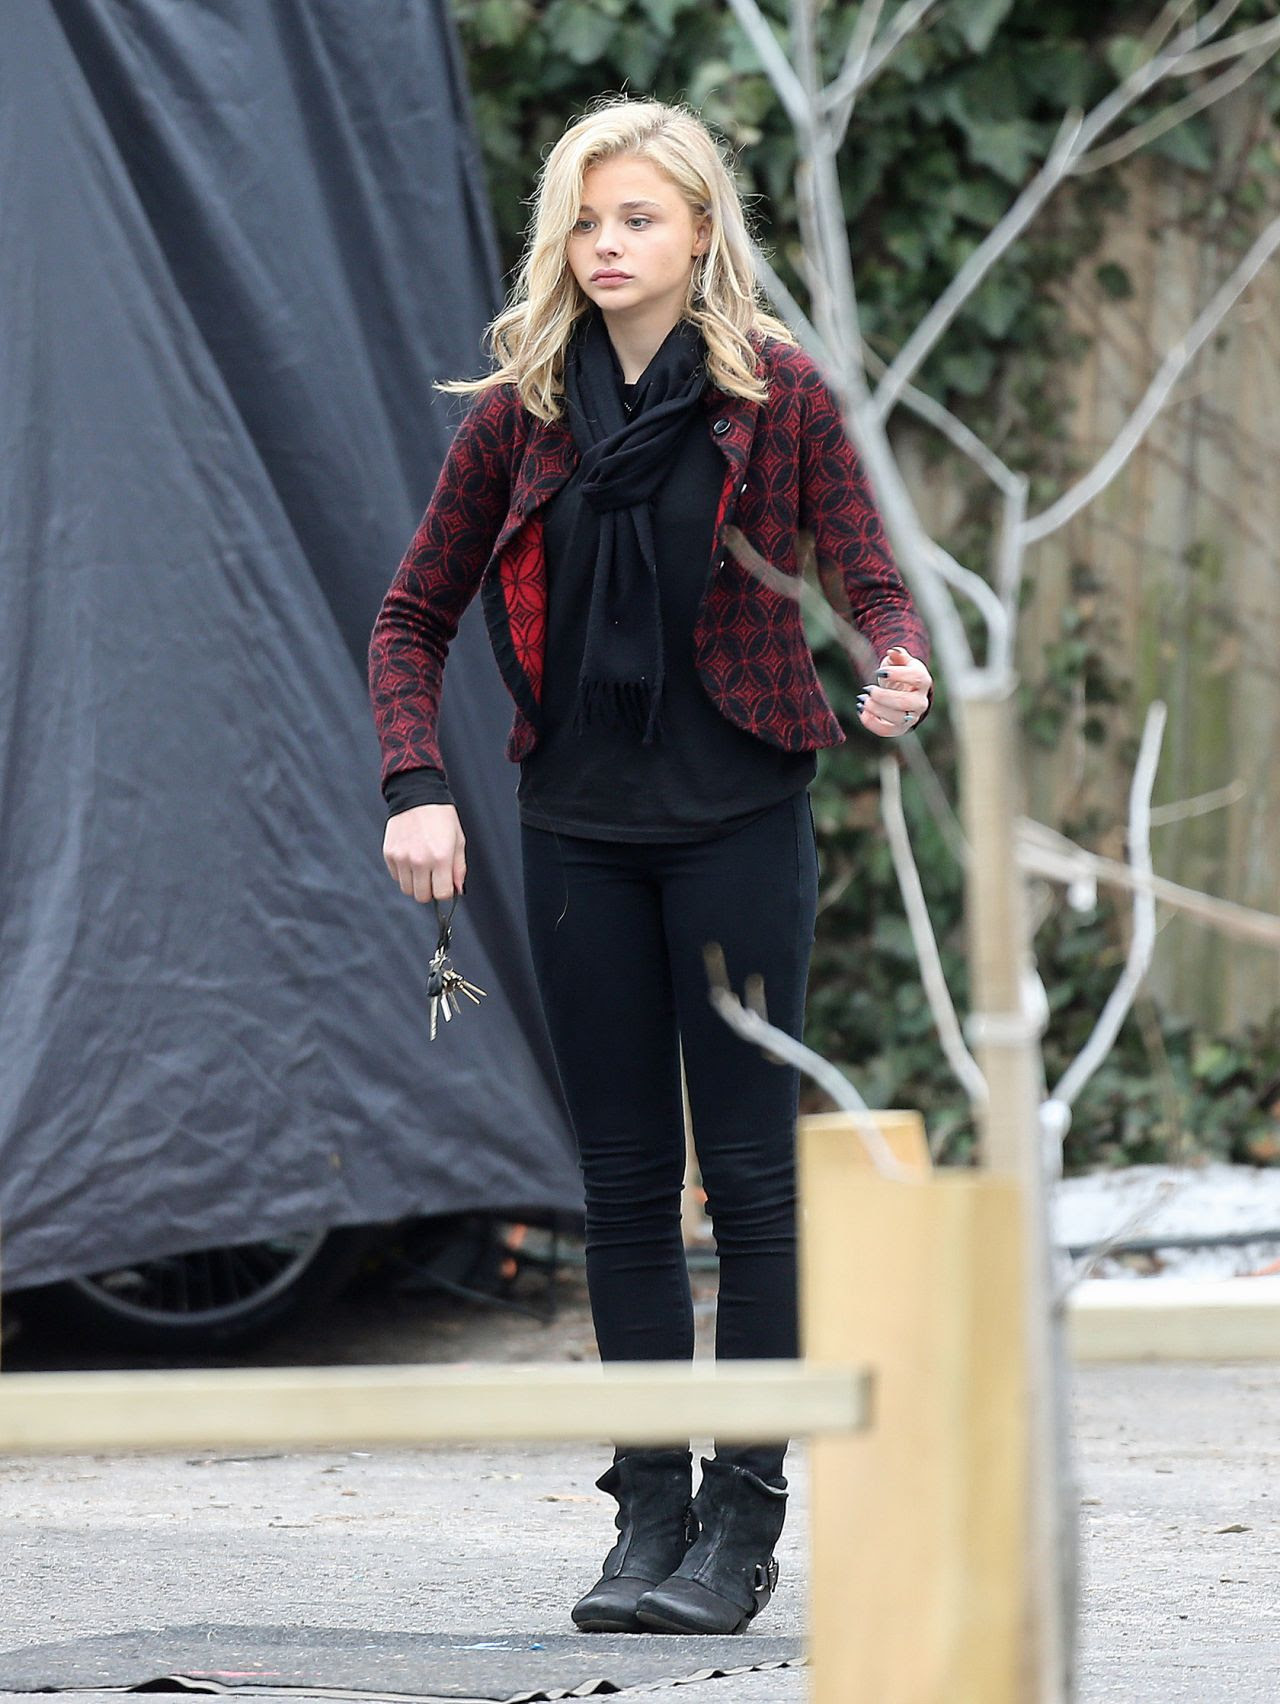 http://celebmafia.com/wp-content/uploads/2015/04/chloe-moretz-set-of-november-criminals-in-providence-rhode-island-april-2015_5.jpg